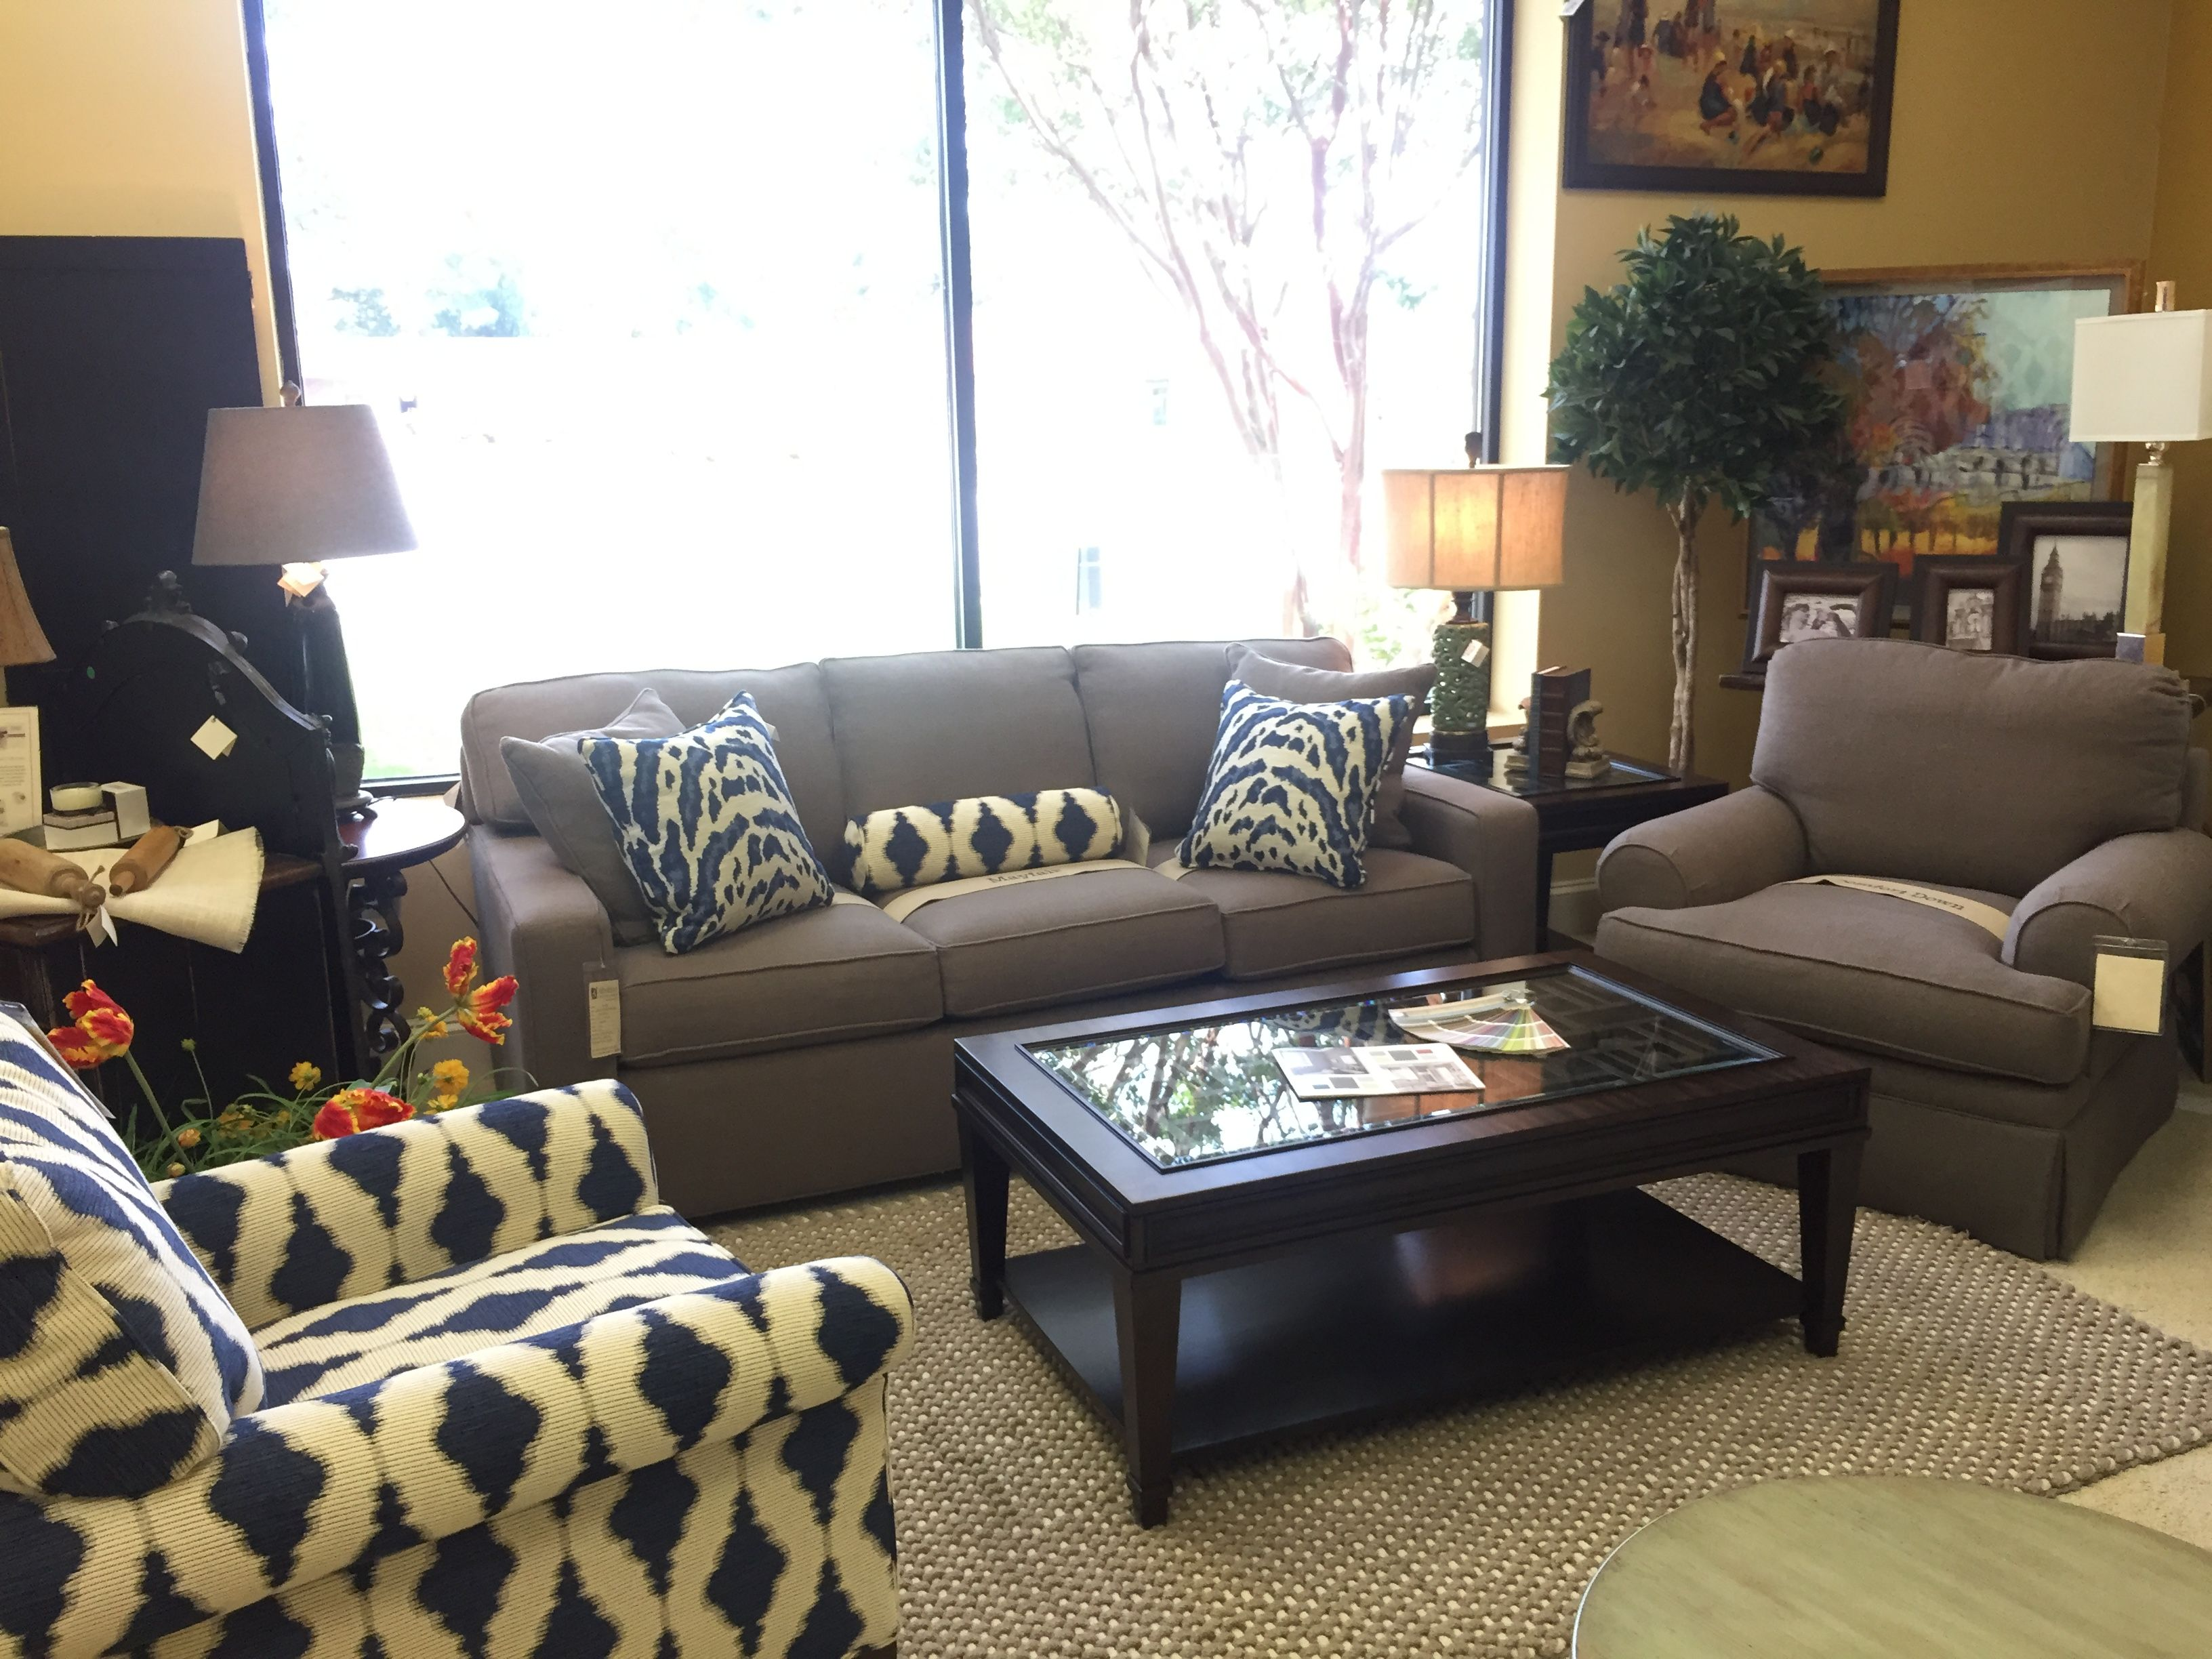 Shop at Albritton e in and check out our CR Laine Copley chair